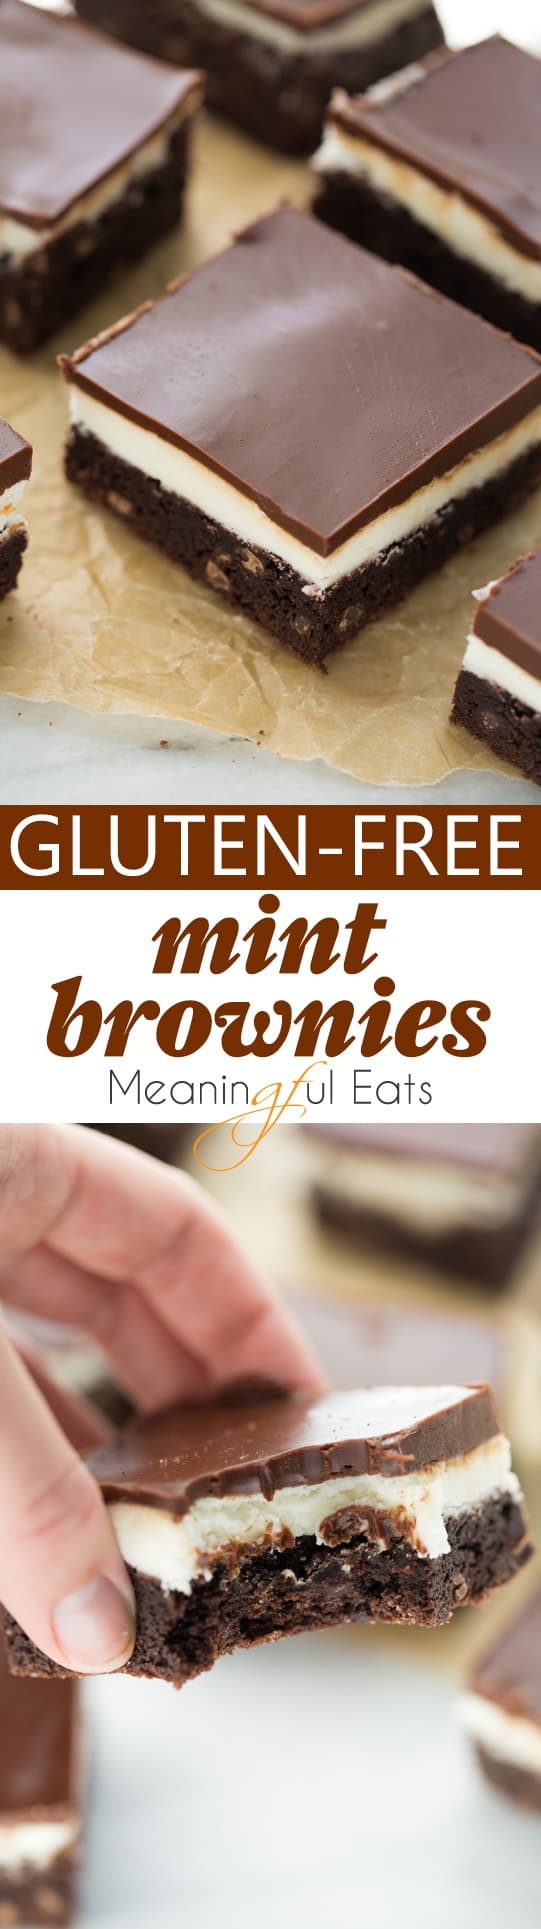 Gluten Free Mint Brownies Meaningful Eats